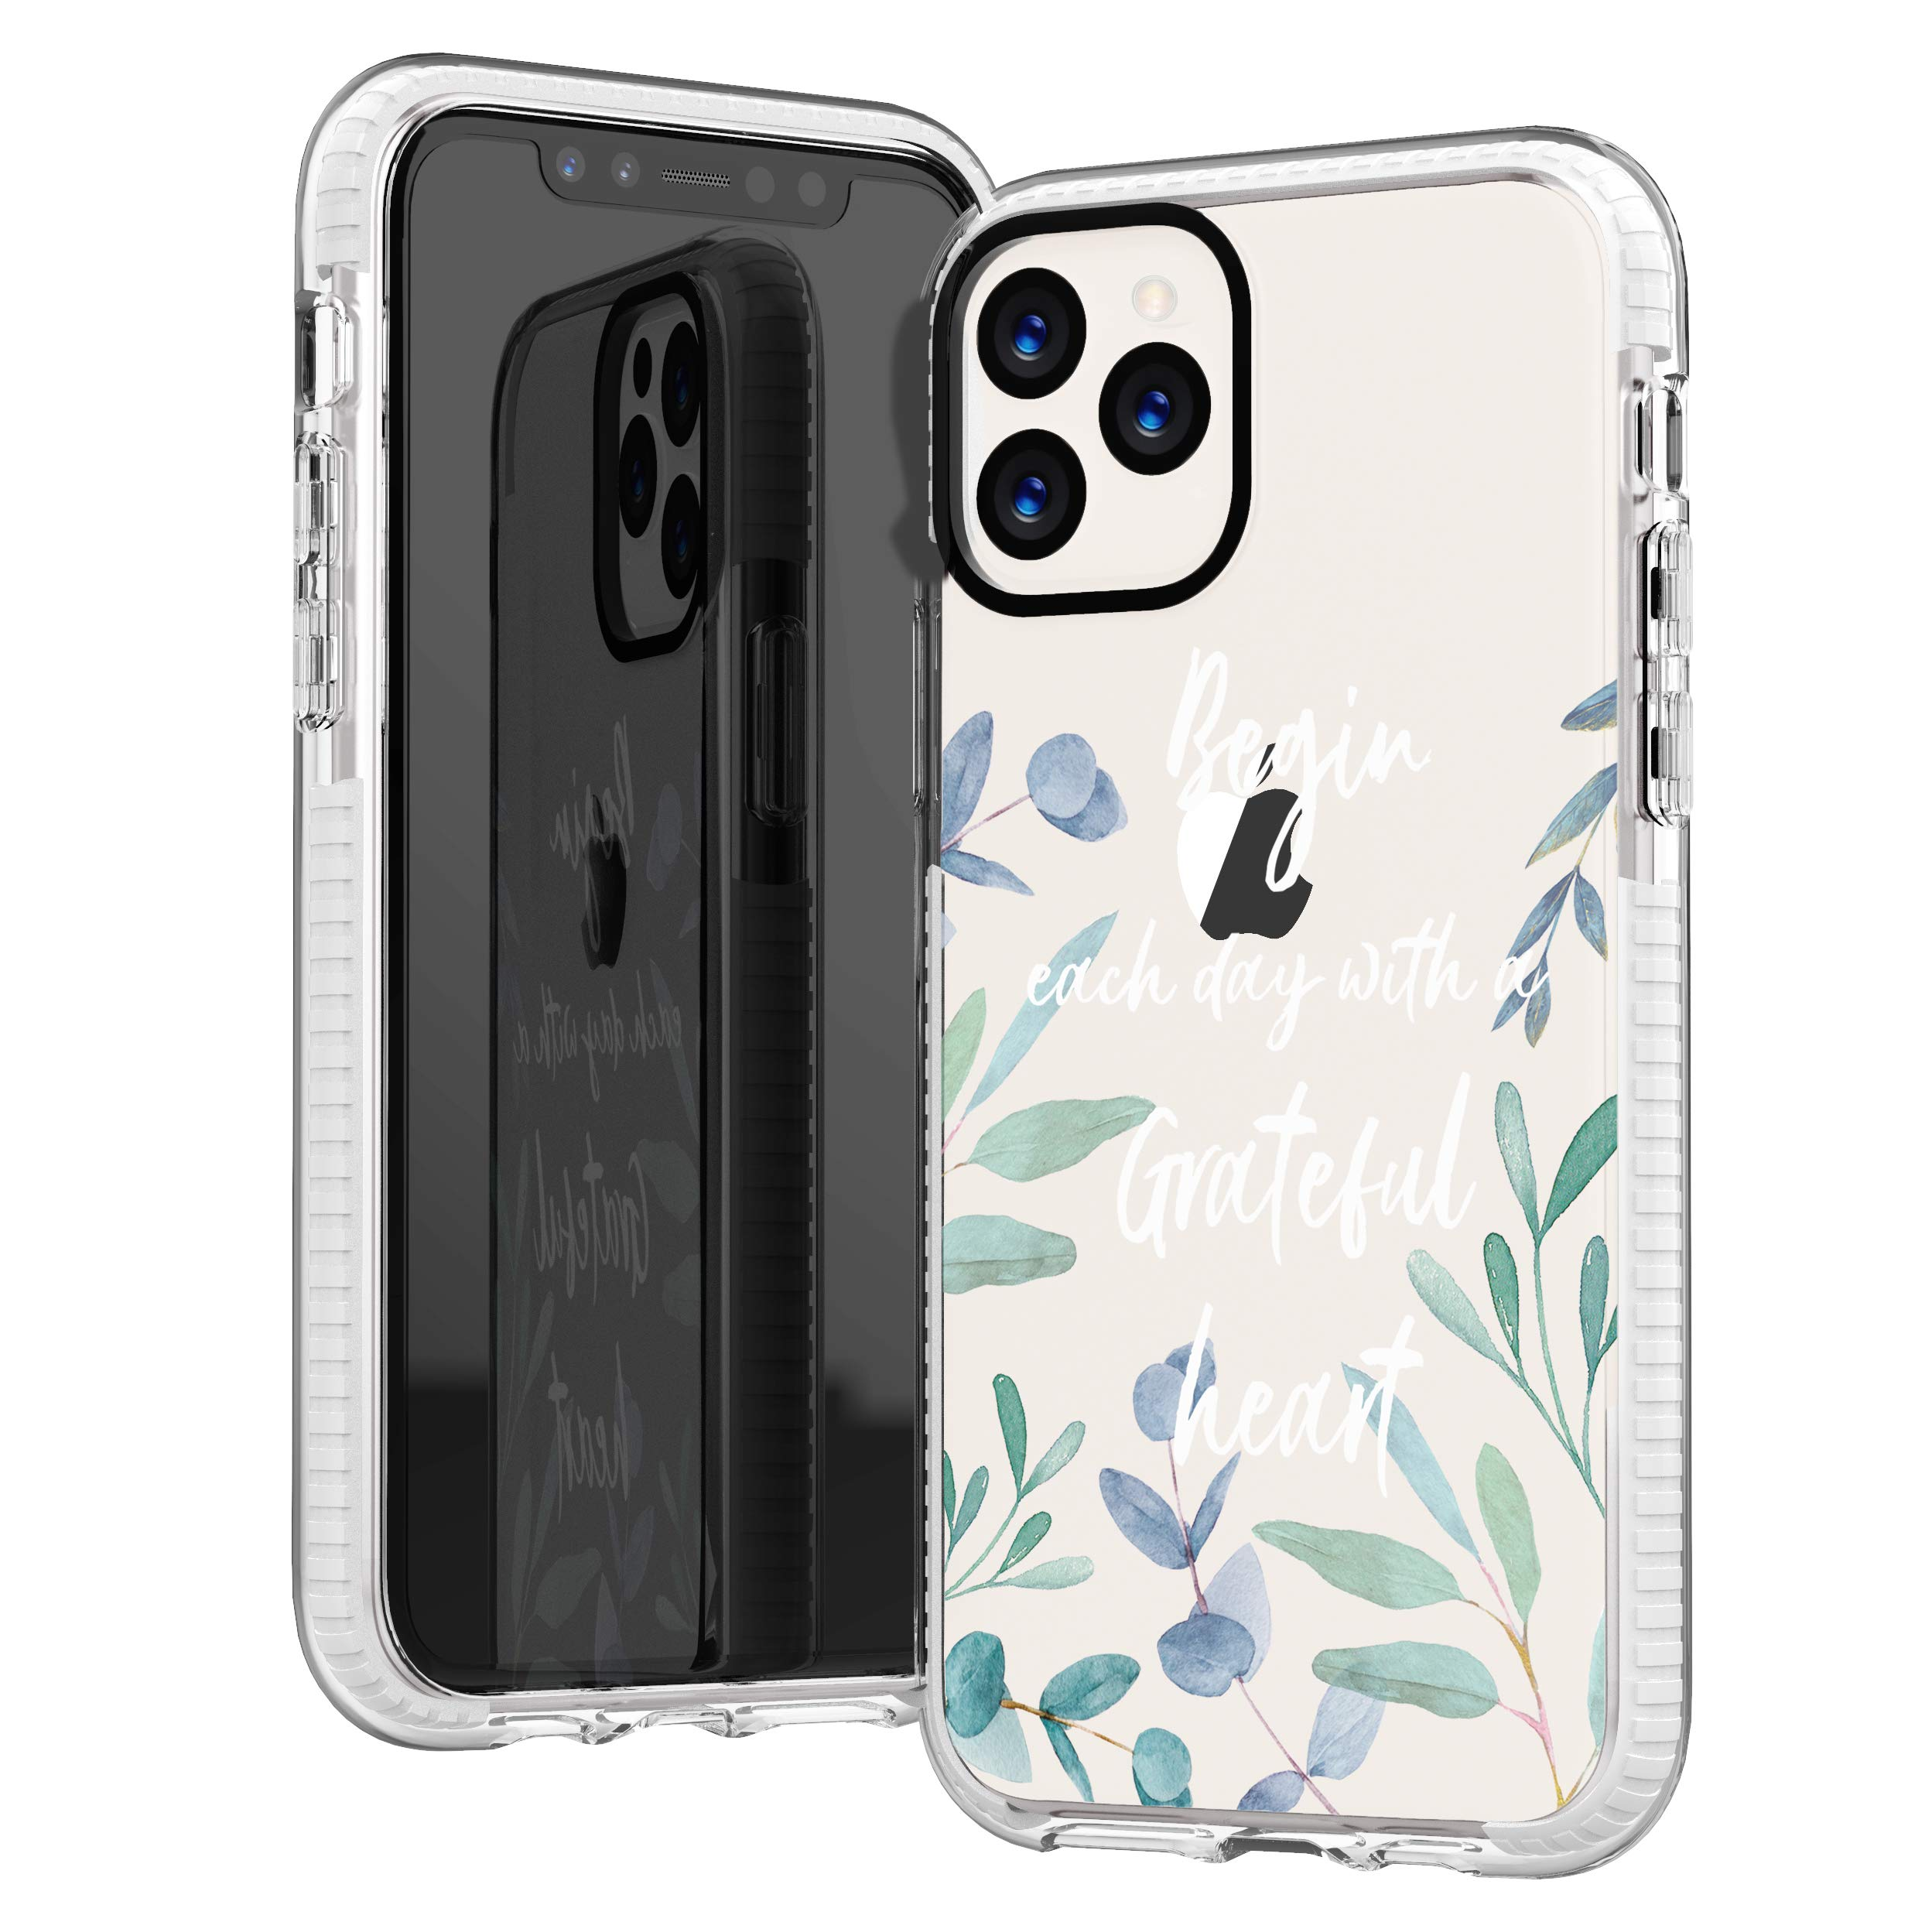 iPhone 11 Pro Max Case,Cute Bible Verses Quotes Flowers Florals Green Leaves Spring Blossoms Christian Inspirational Girls Women Soft Protective Clear Case Design Case Compatible for iPhone 11 Pro Max